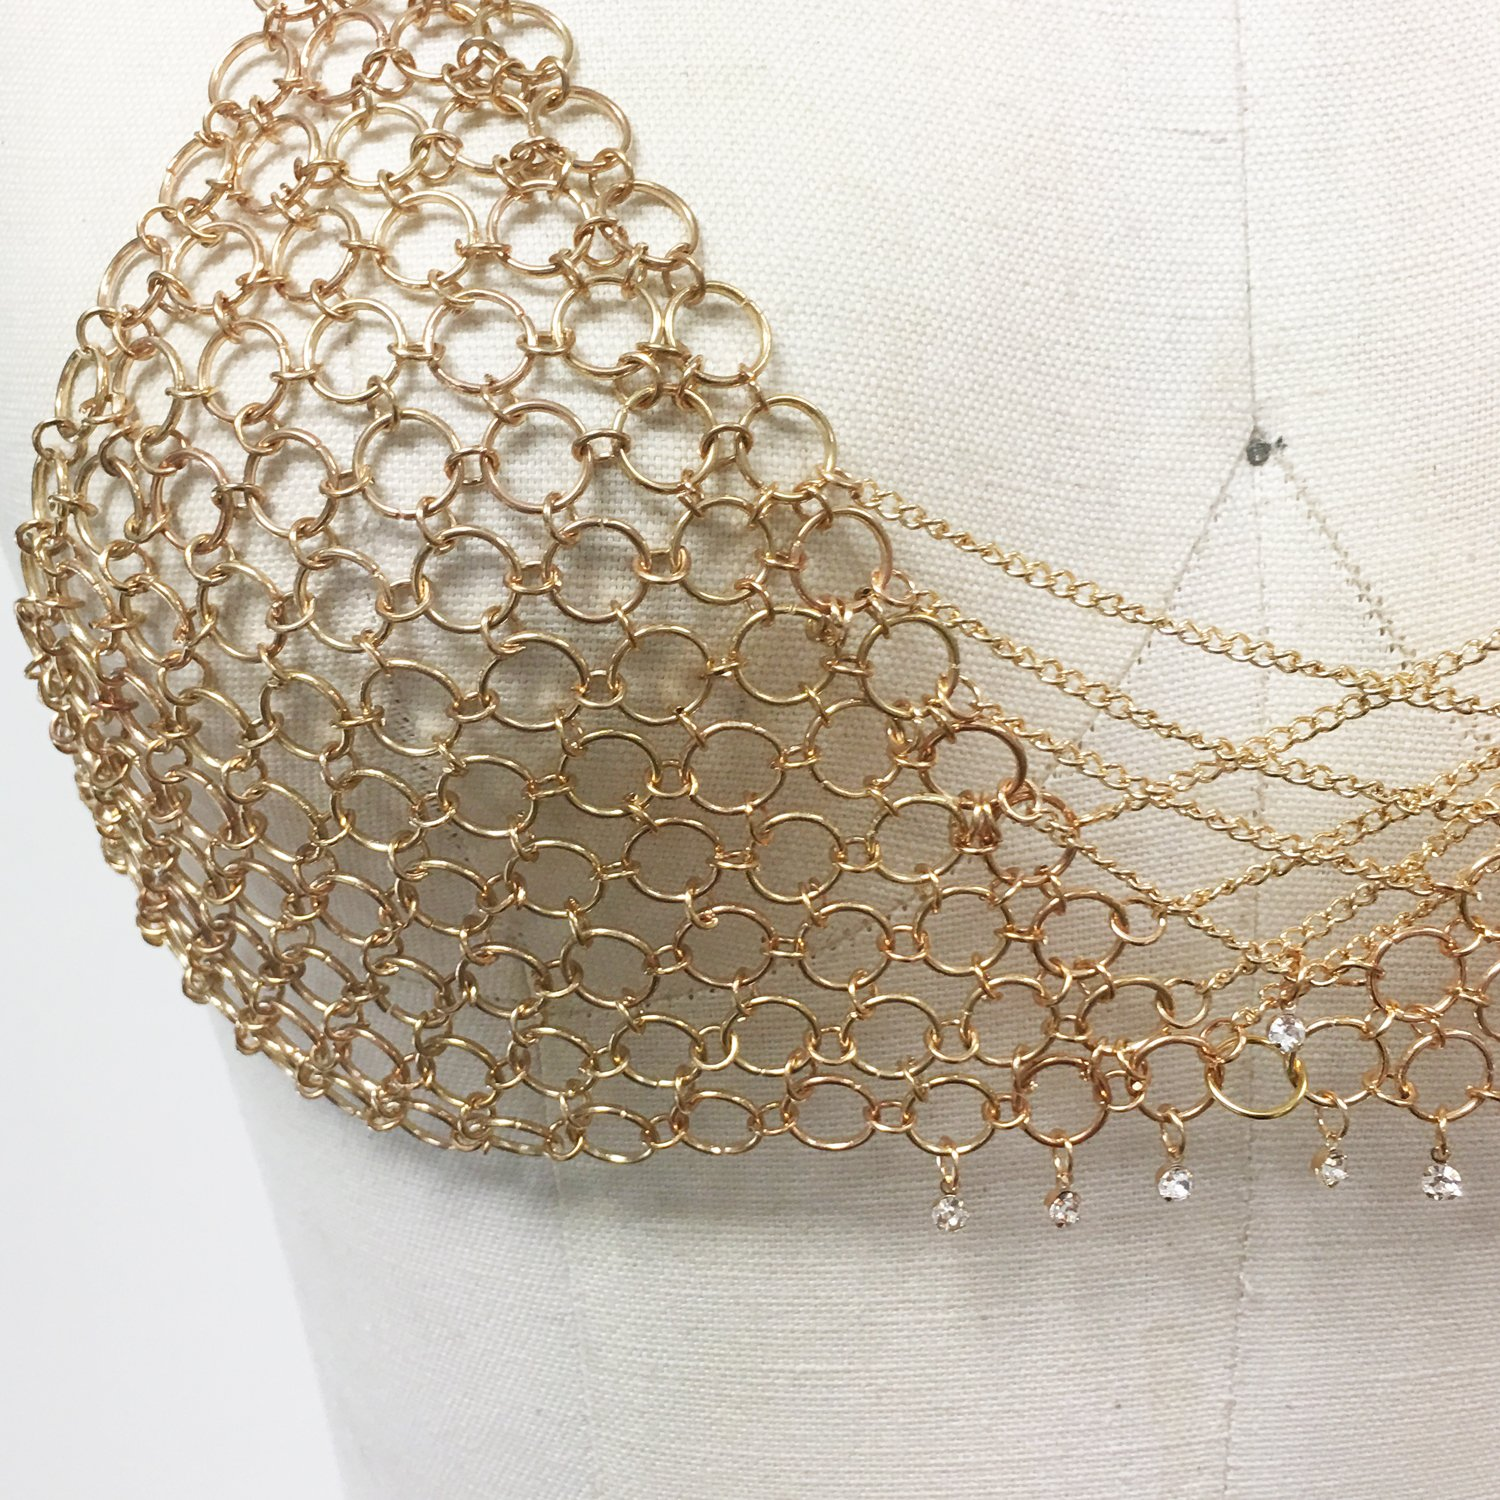 44232a9d49 Amazon.com  Chain mail bralette metaL bra with lace up corset design (ROSE  GOLD) (GOLD)  Jewelry